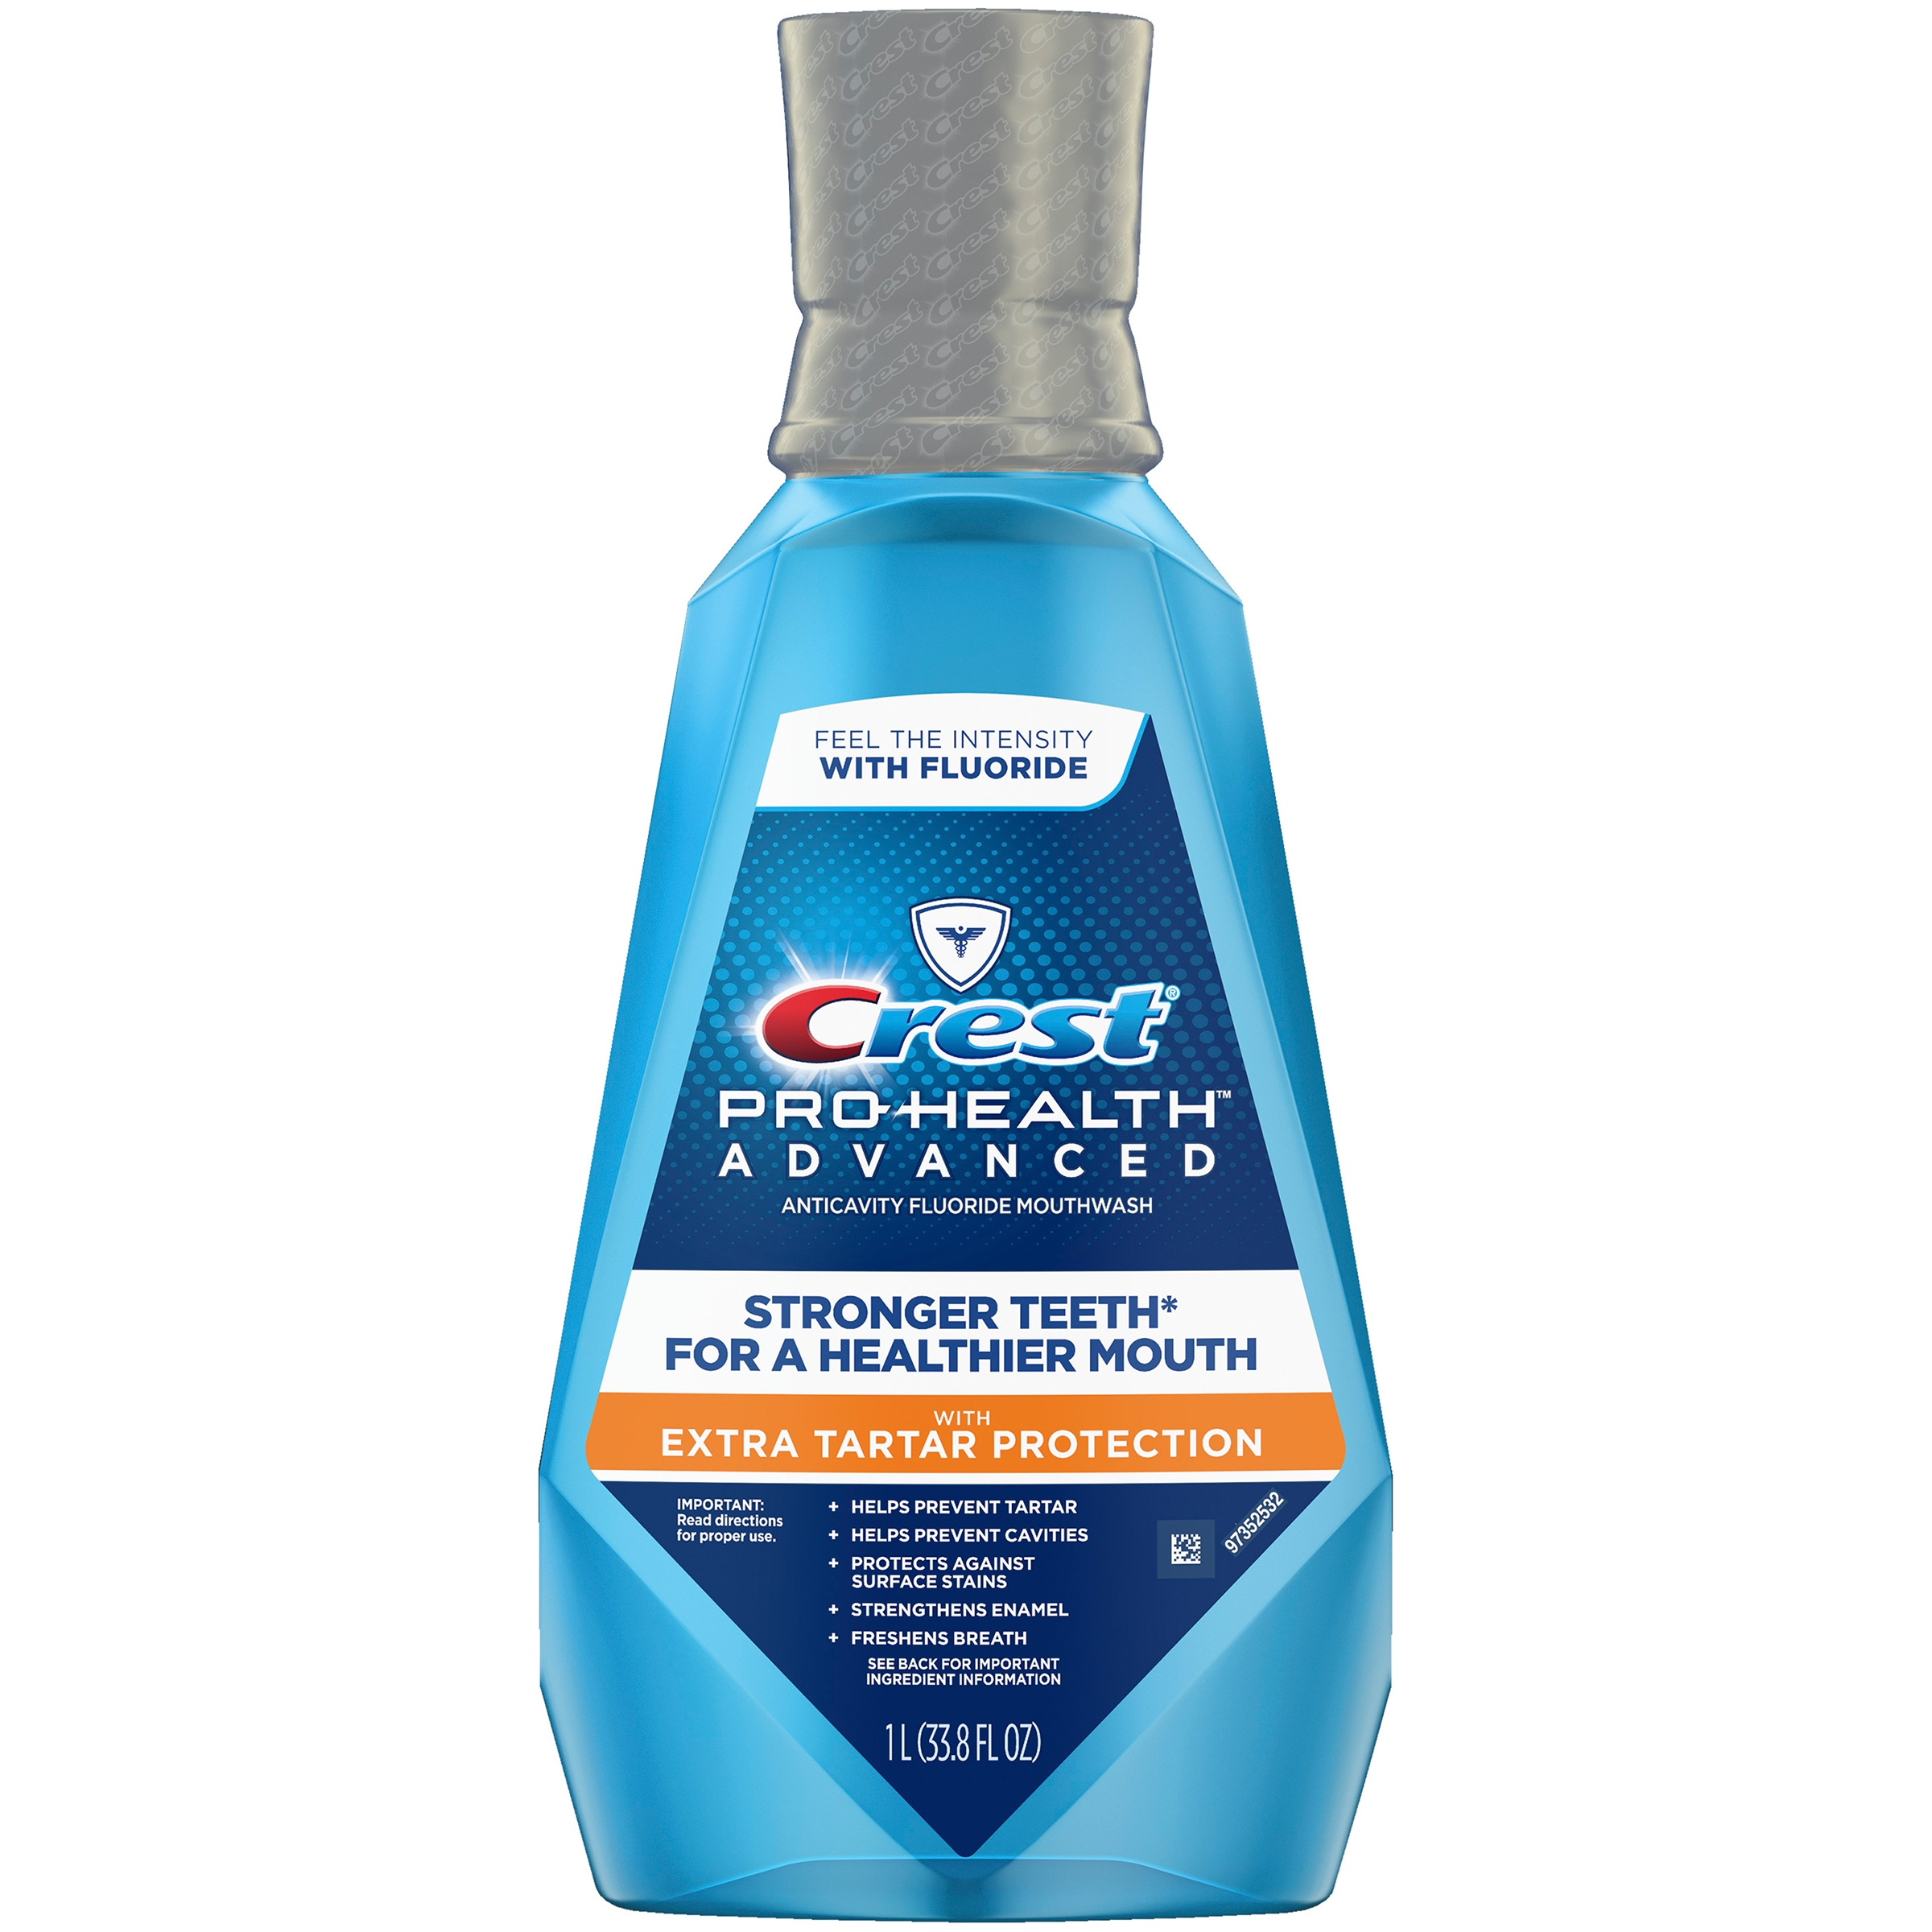 Crest Pro-Health Advanced Mouthwash with Extra Tartar Protection, Refreshing Mint, 1 L